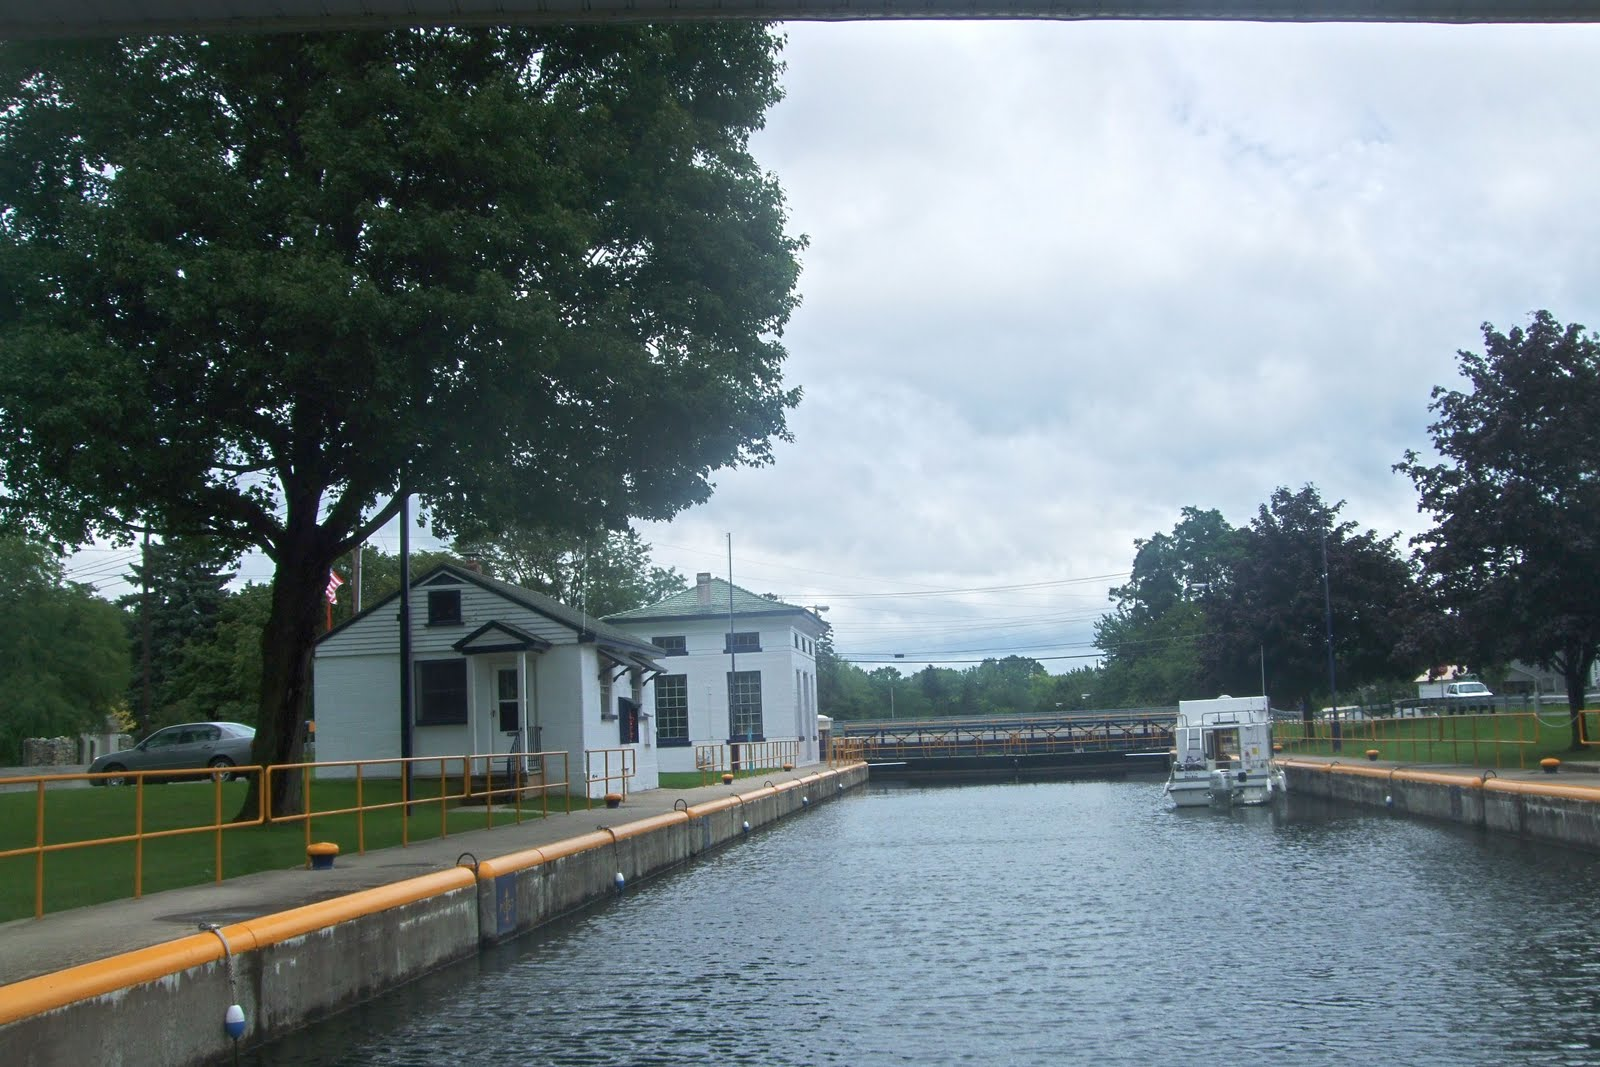 Merle S Whirls Cruising The Erie Canal In Style